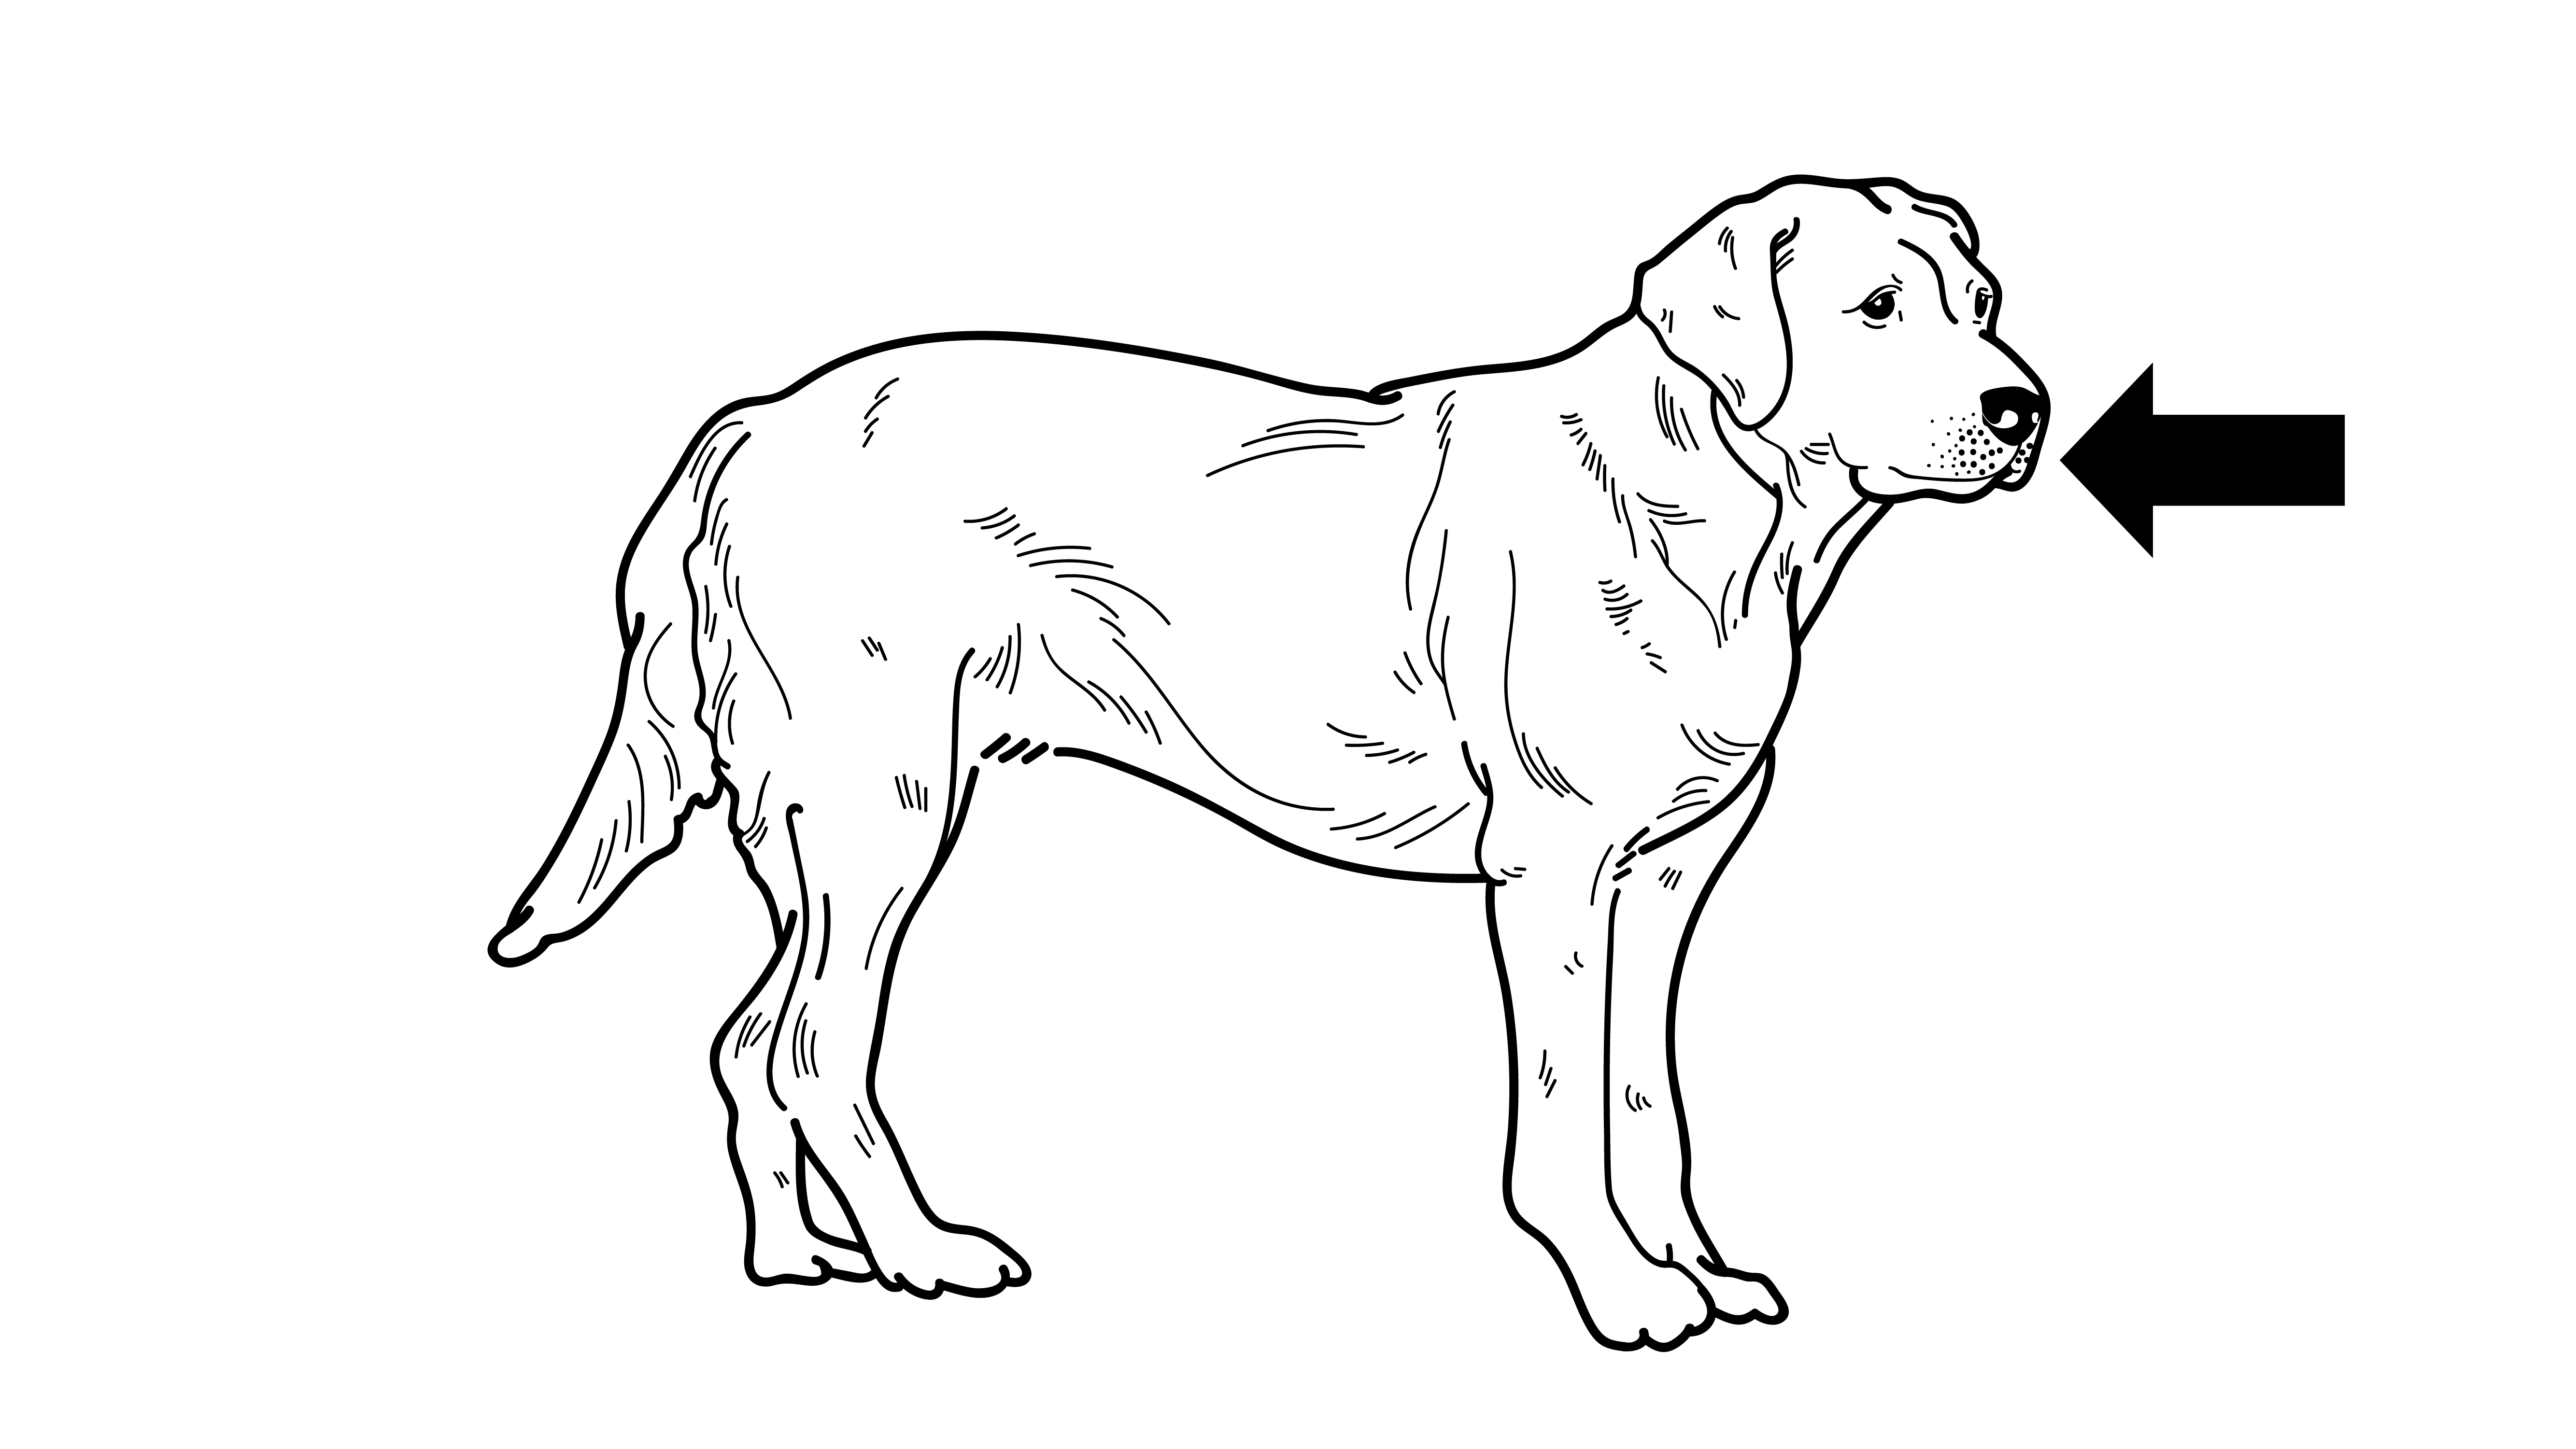 how well do you know the 6 parts of a dog